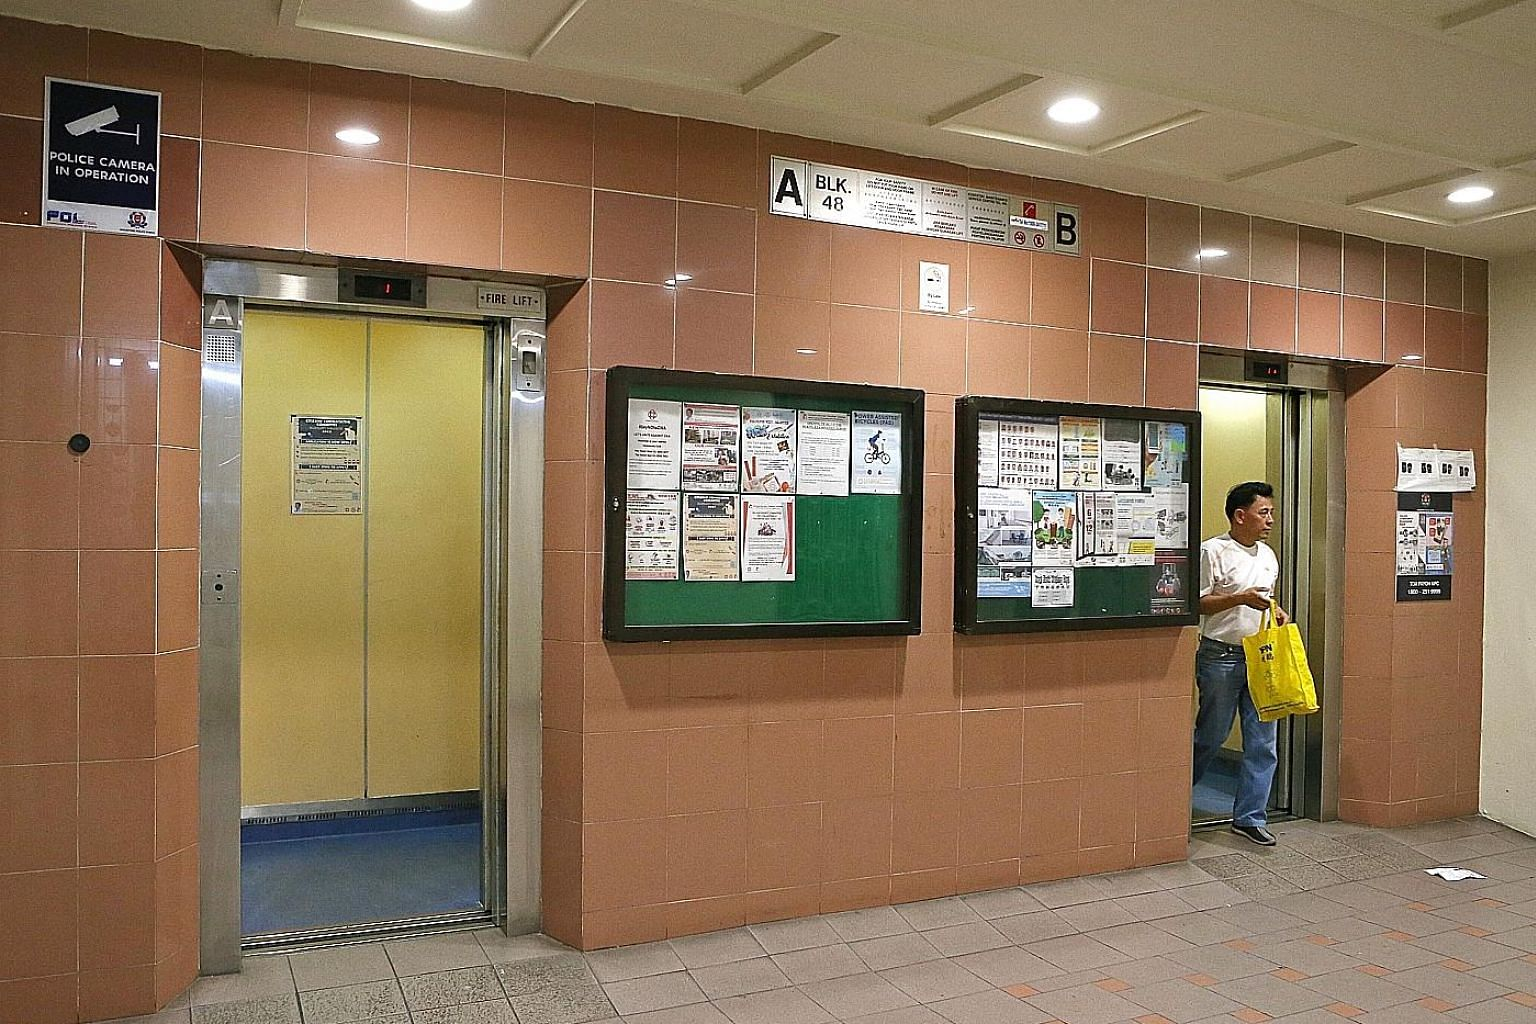 HDB lift issues have been in the spotlight in recent years after a spate of accidents and injuries.